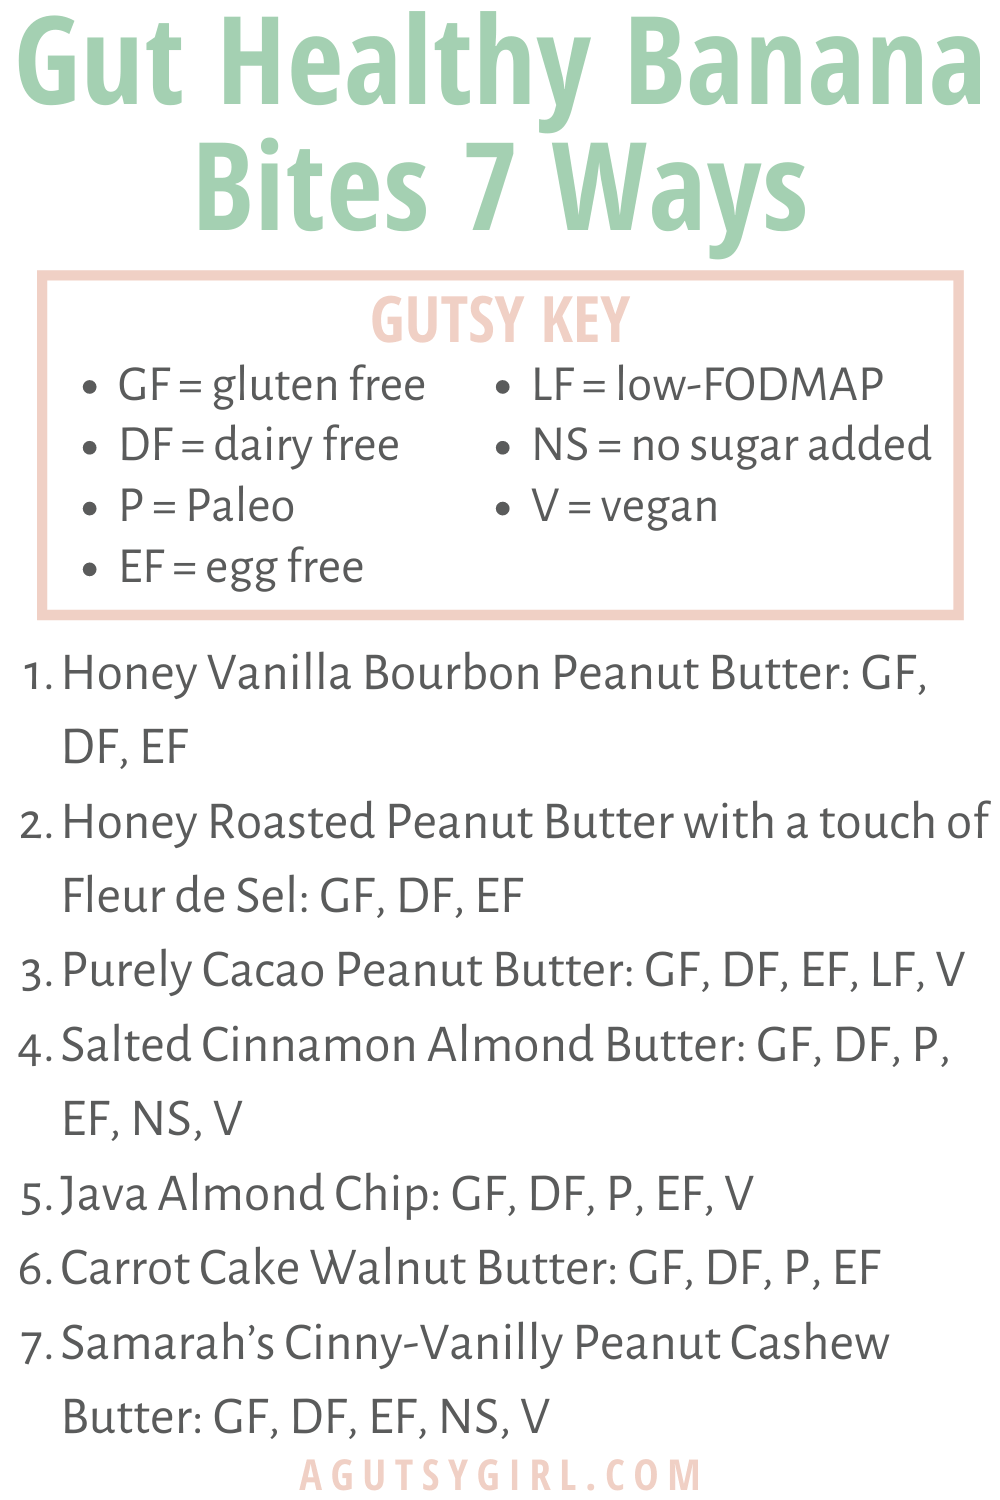 Gut Healthy Banana Bites 7 Ways agutsygirl.com How to make your own A Gutsy Girl nut butters #nutbutter #banana #guthealth Gutsy Key